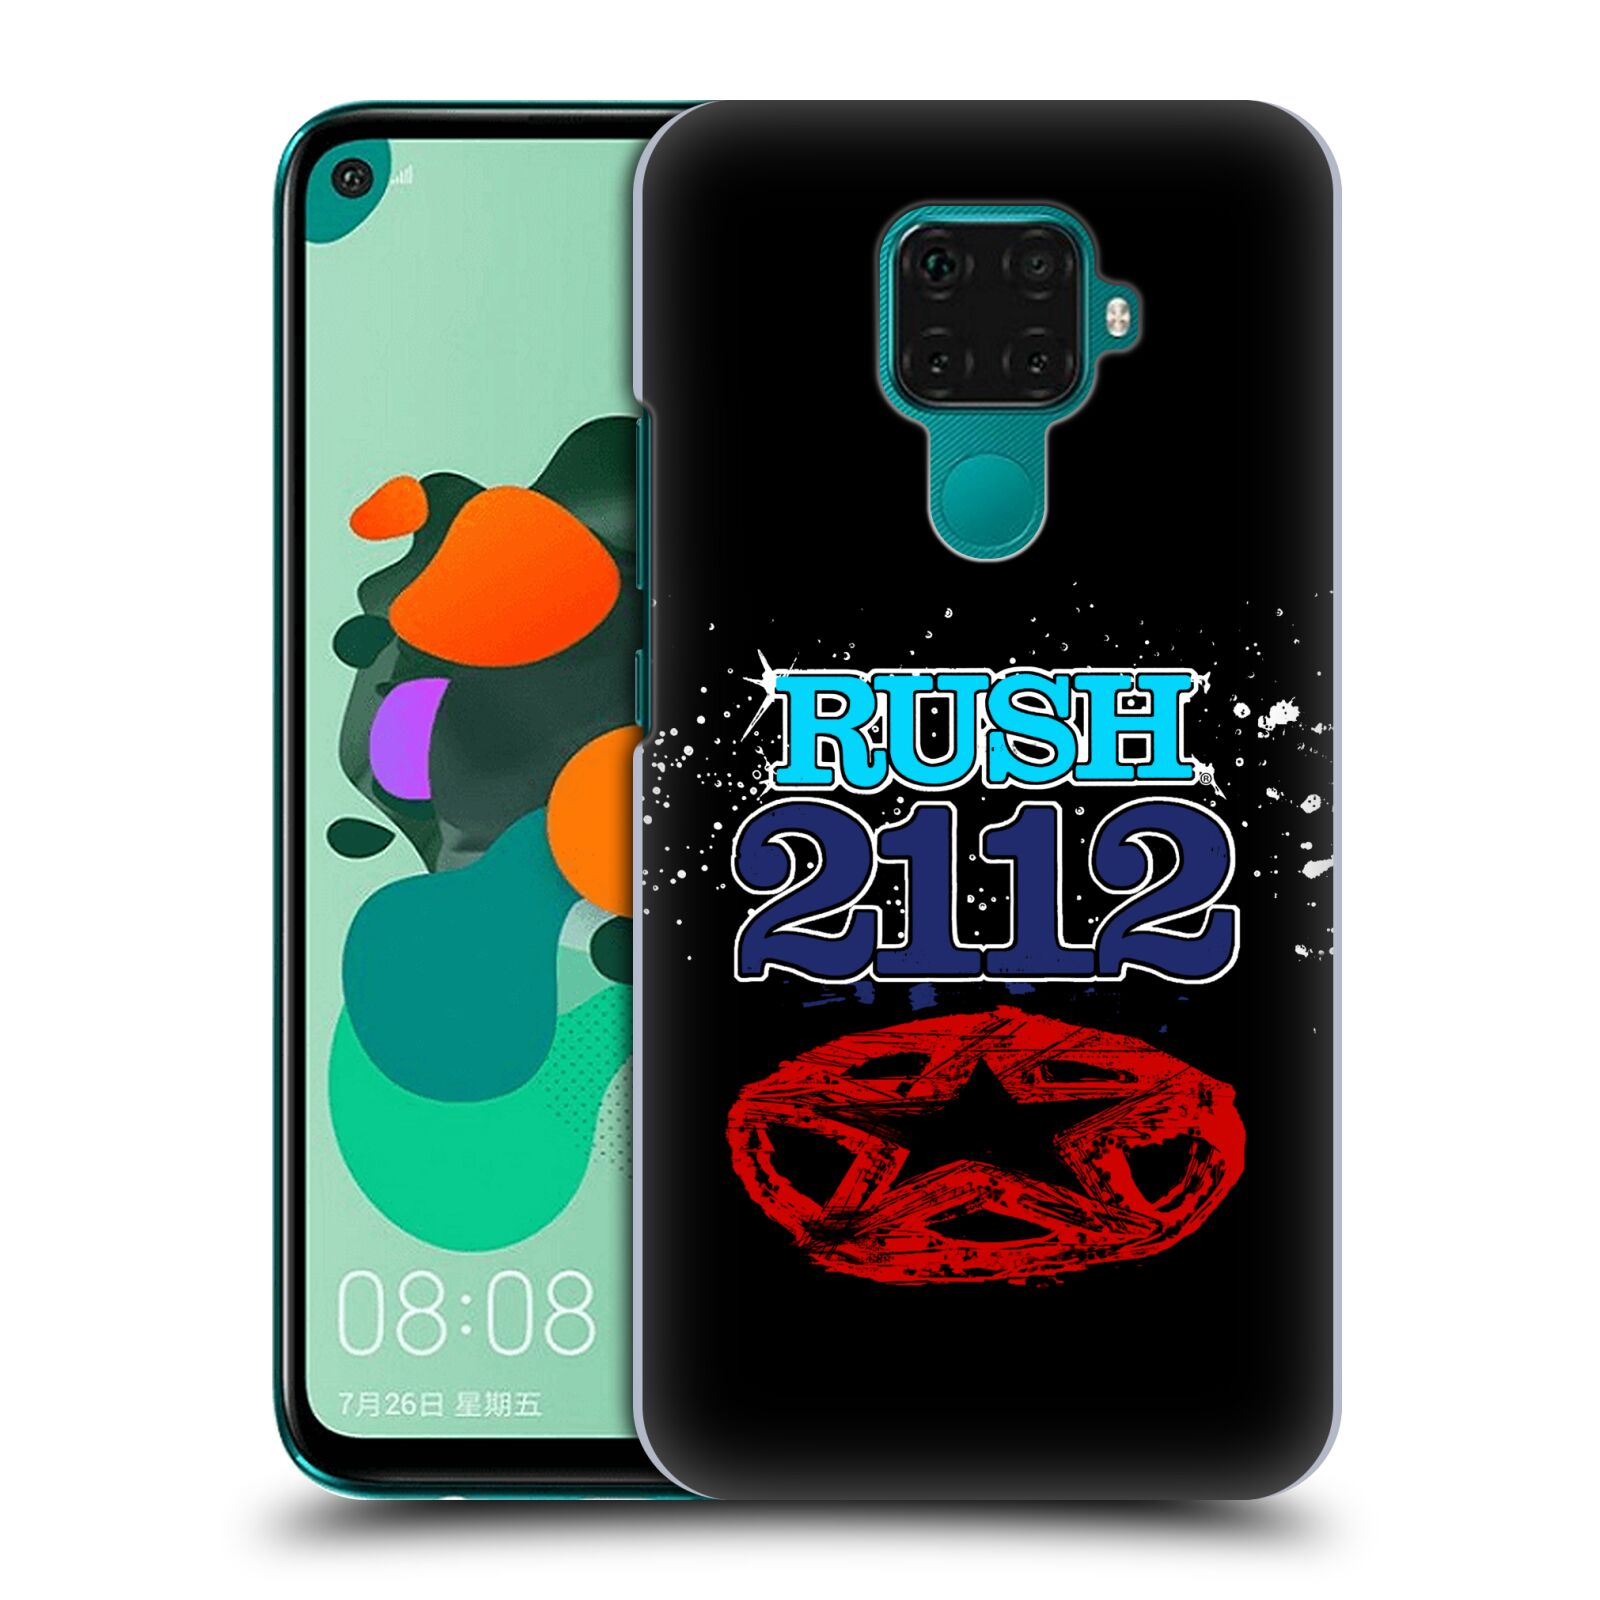 Official Rush Key Art 2112 Back Case for Huawei Nova 5i Pro/Mate 30 Lite